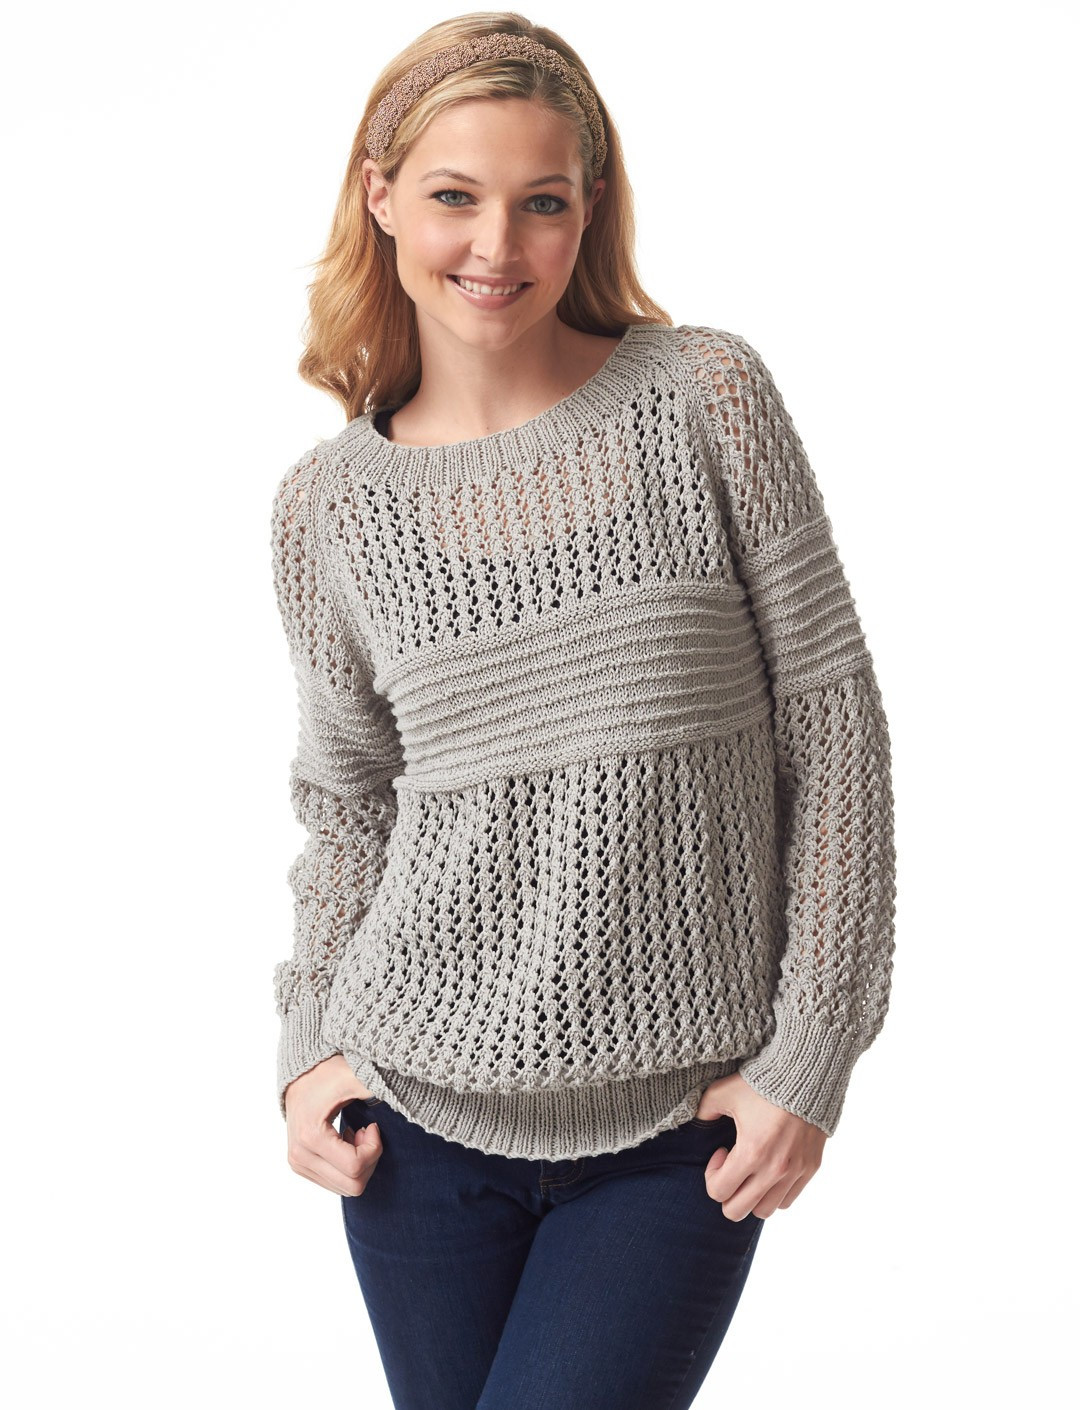 Awesome Free La S Knitting Patterns Double Knit Double Knitting Patterns Of Attractive 46 Models Double Knitting Patterns